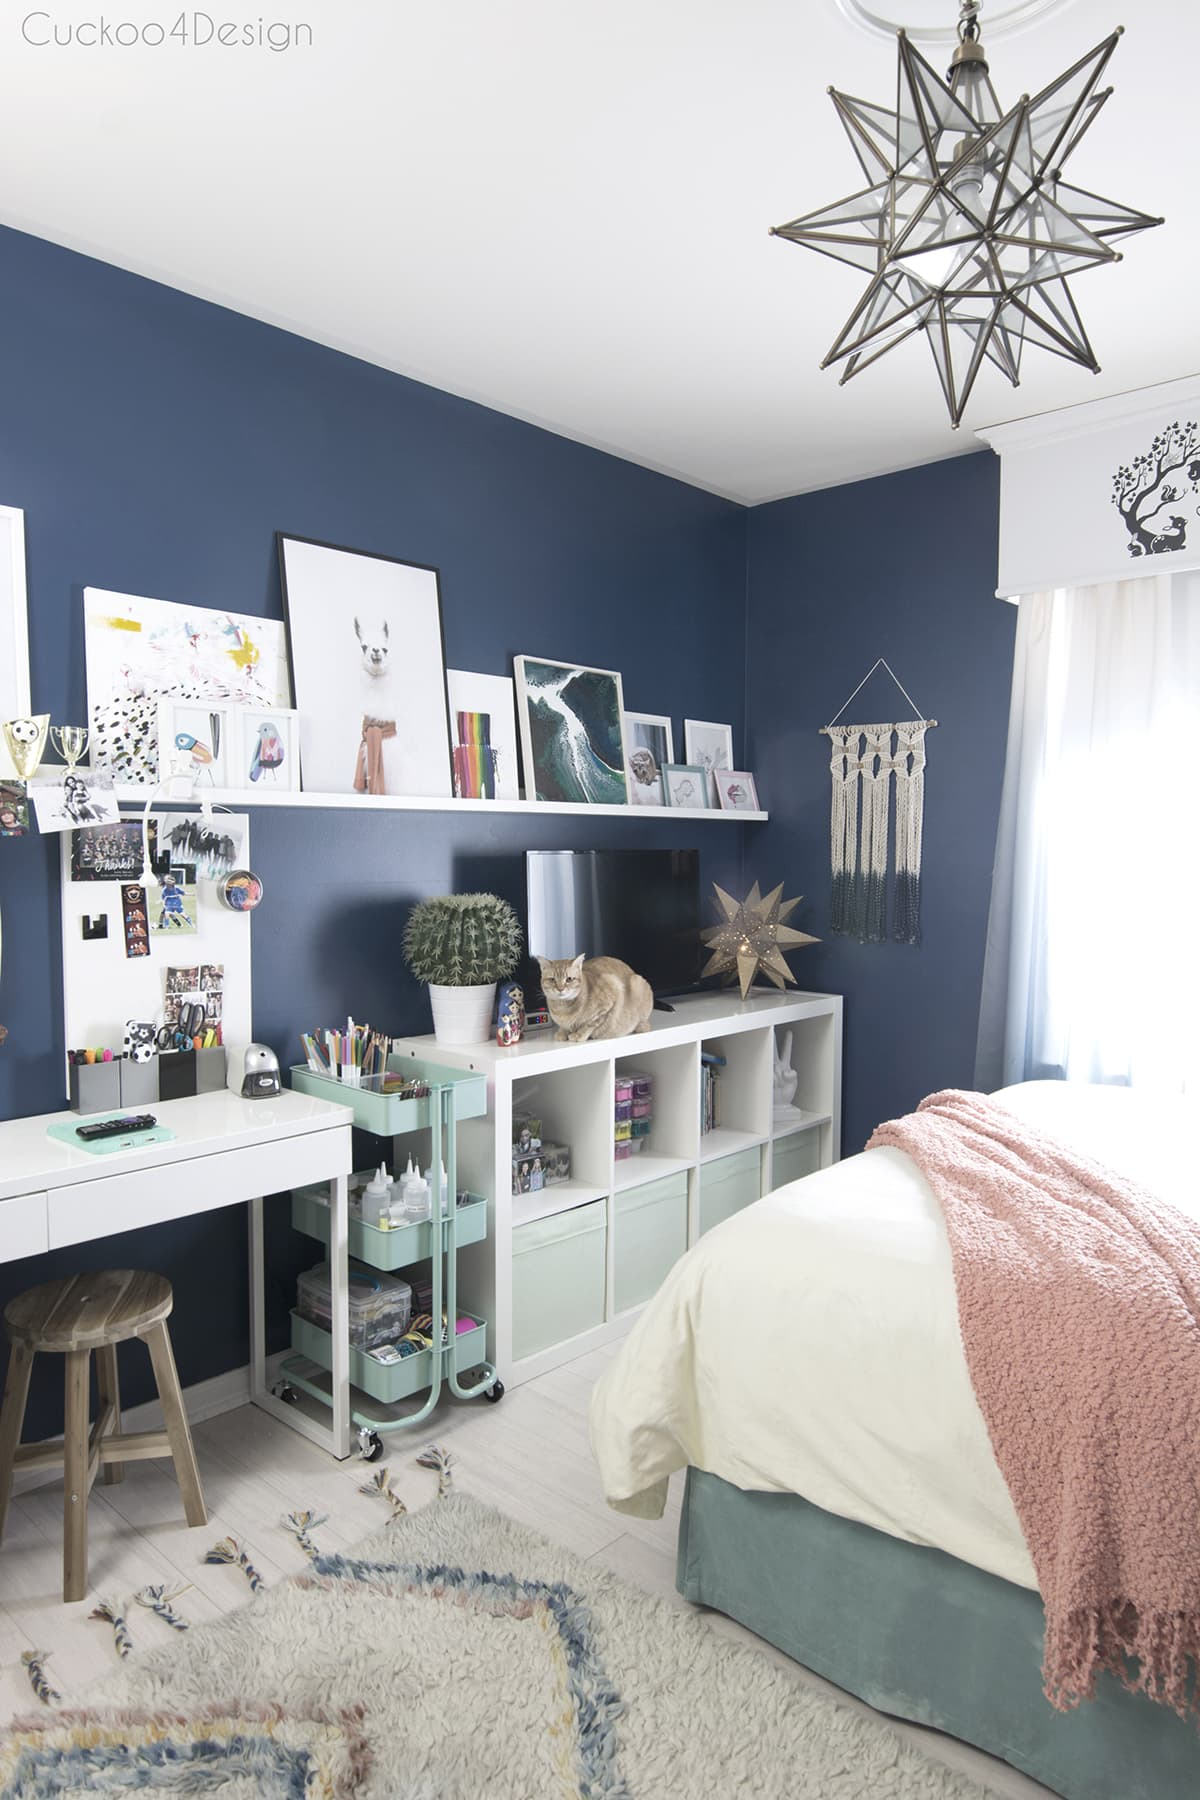 Cheap ways to decorate a teenage girl's bedroom ... on Cheap Bedroom Ideas For Small Rooms  id=95967